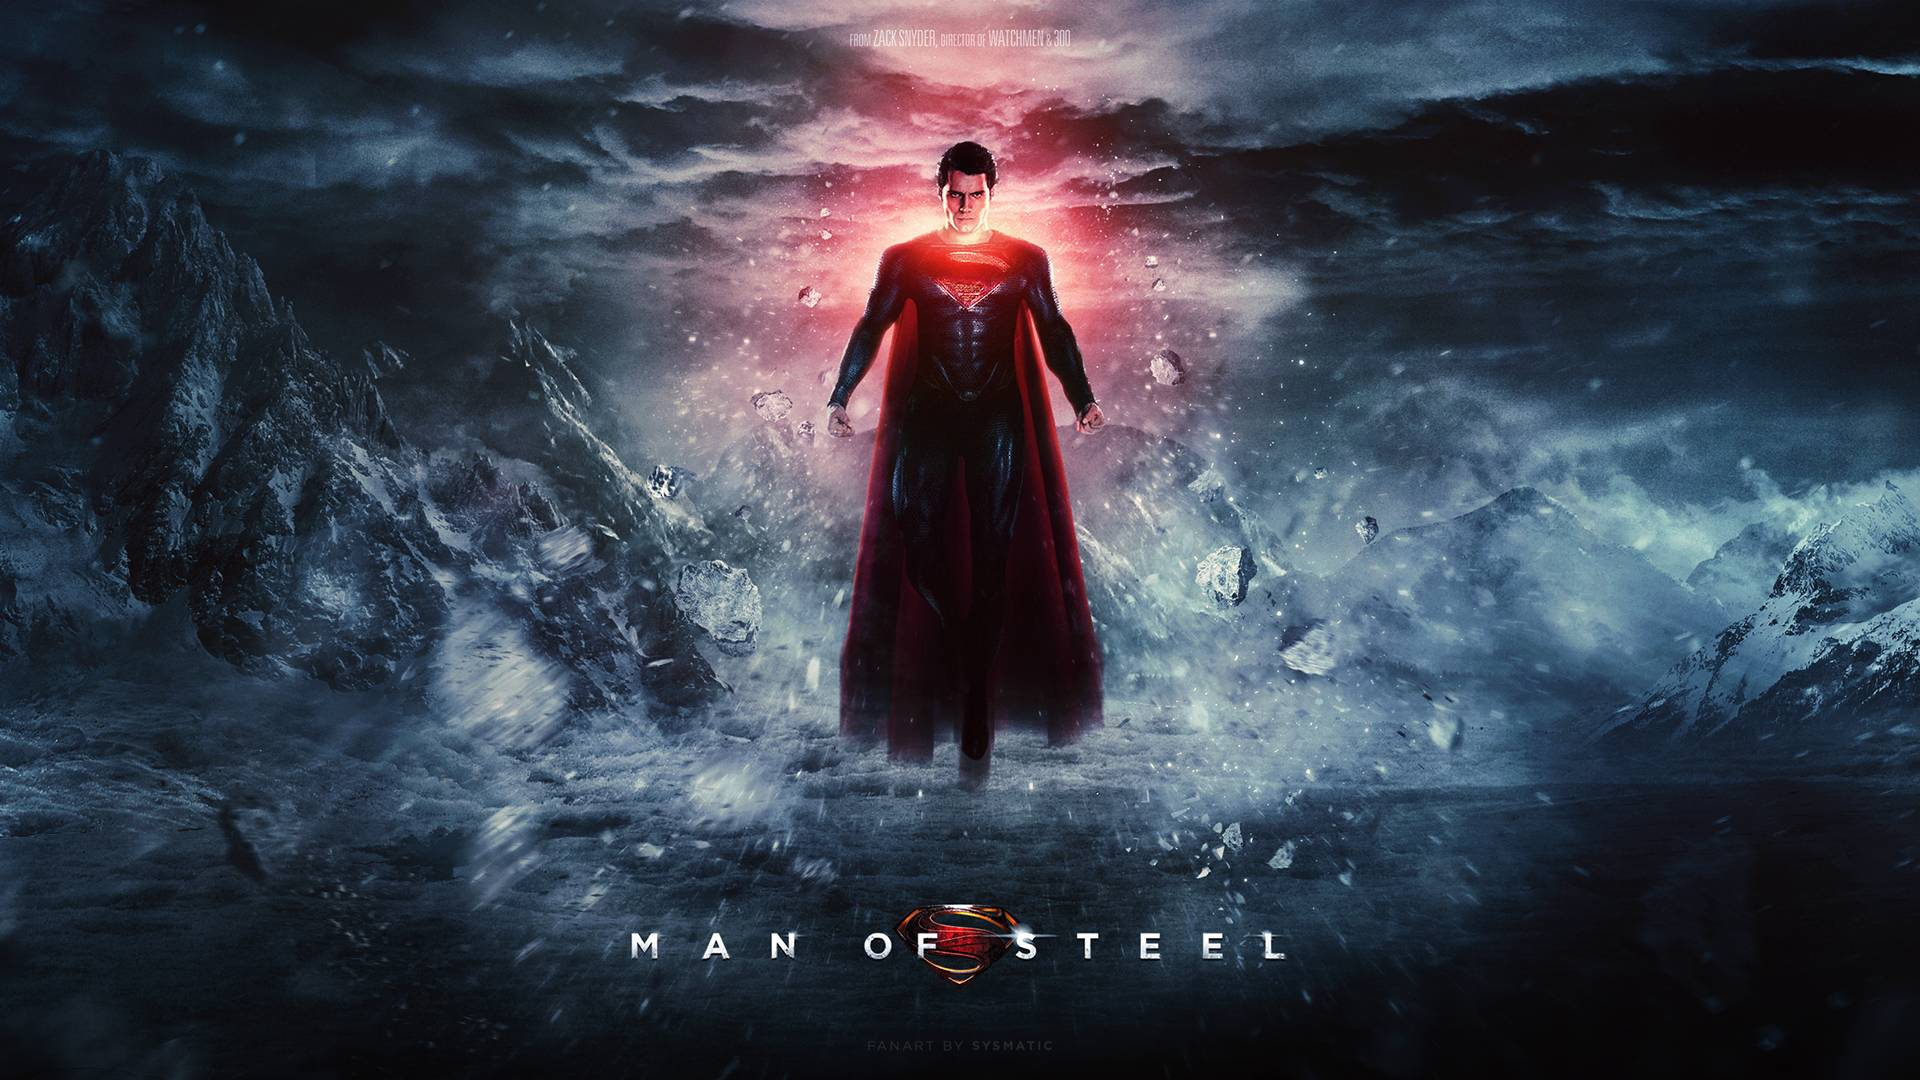 Man of steel desktop backgrounds wallpaper cave man of steel hd wallpapers download voltagebd Gallery